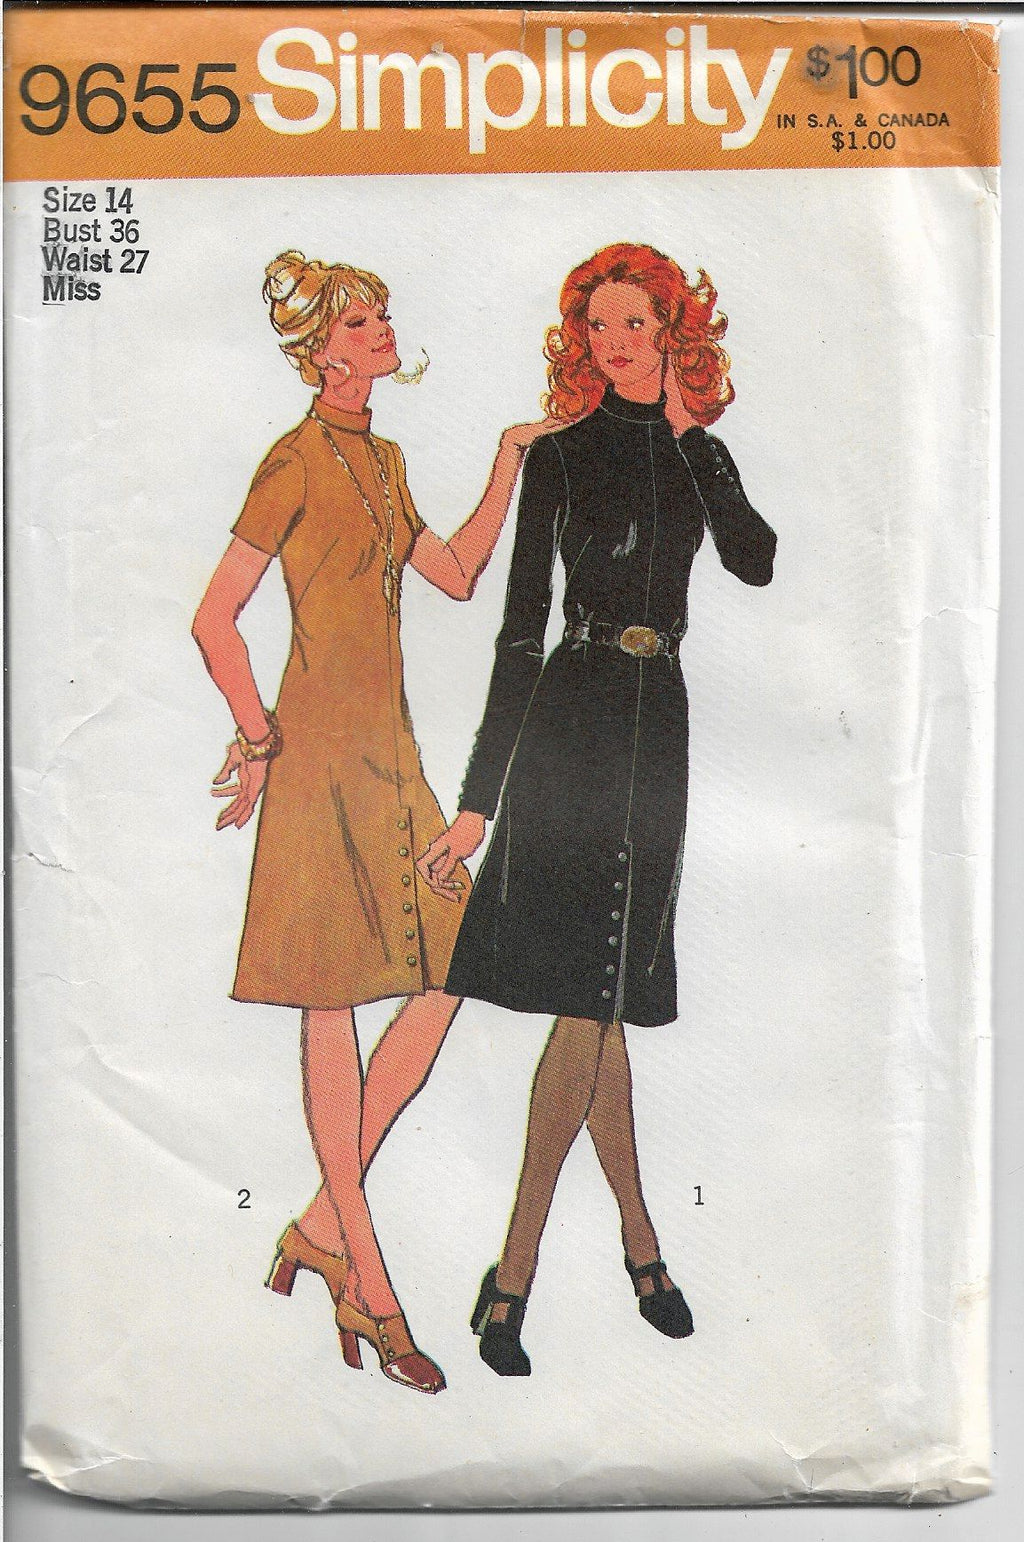 Simplicity 9655 Ladies Dress Back Zipper Vintage Sewing Pattern 1970's - VintageStitching - Vintage Sewing Patterns